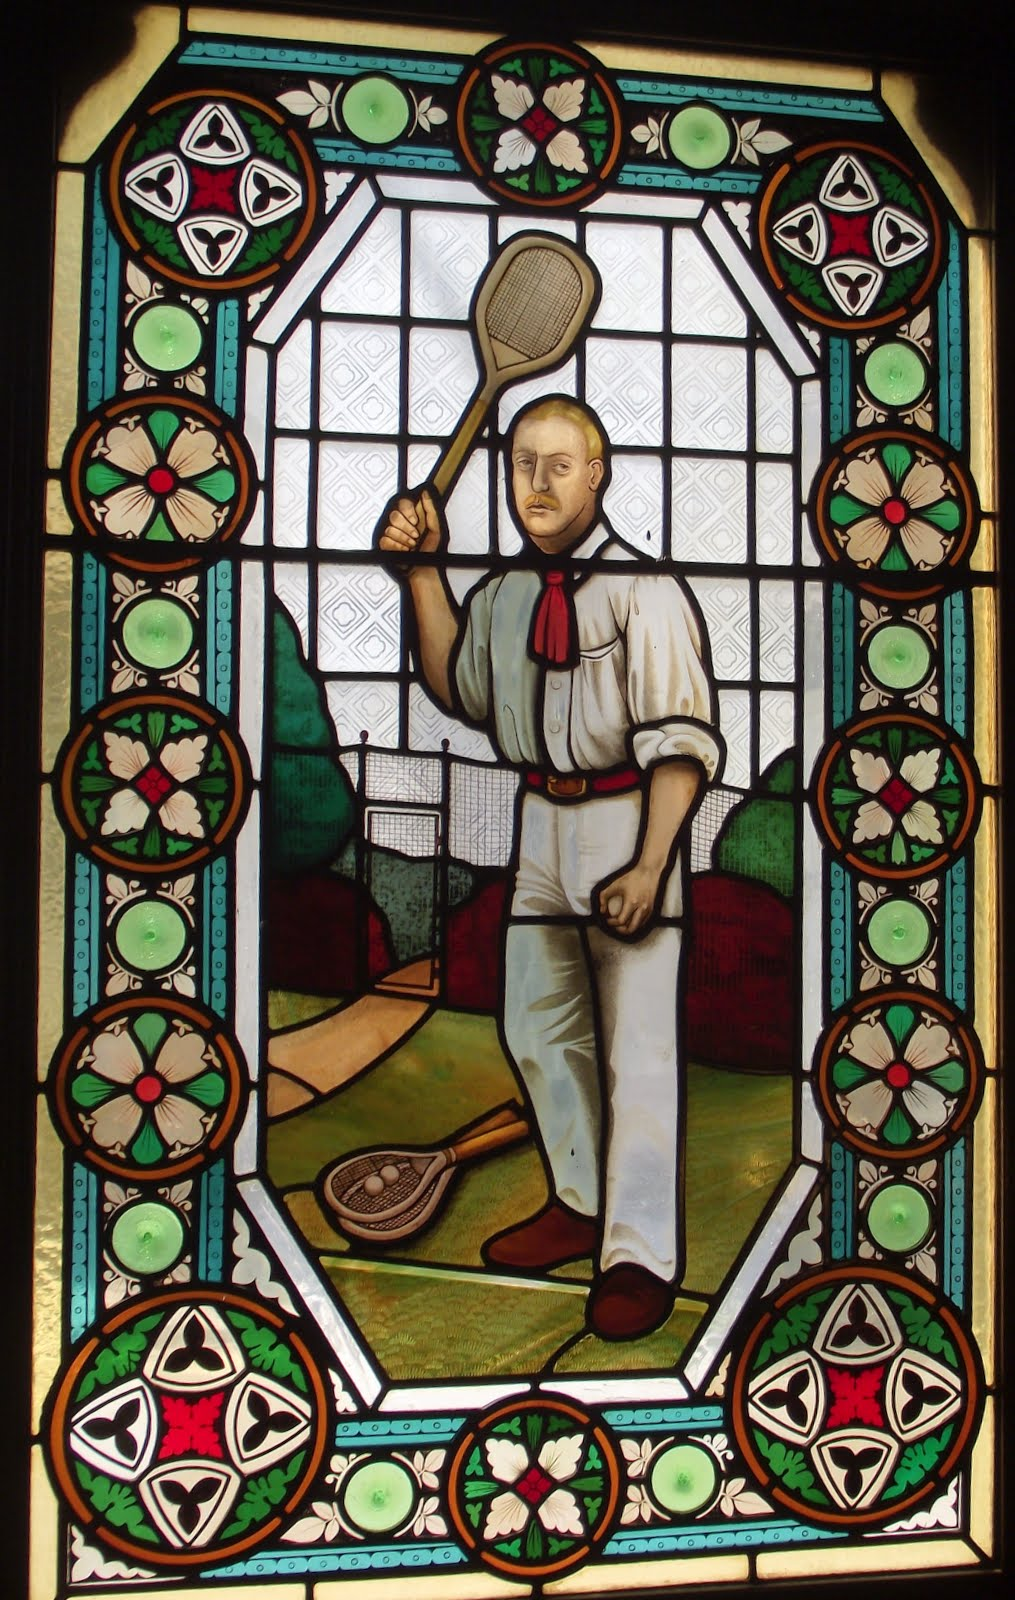 William Renshaw winner of seven singles and seven doubles cups, he with his brother, made Lawn Tennis into a sport